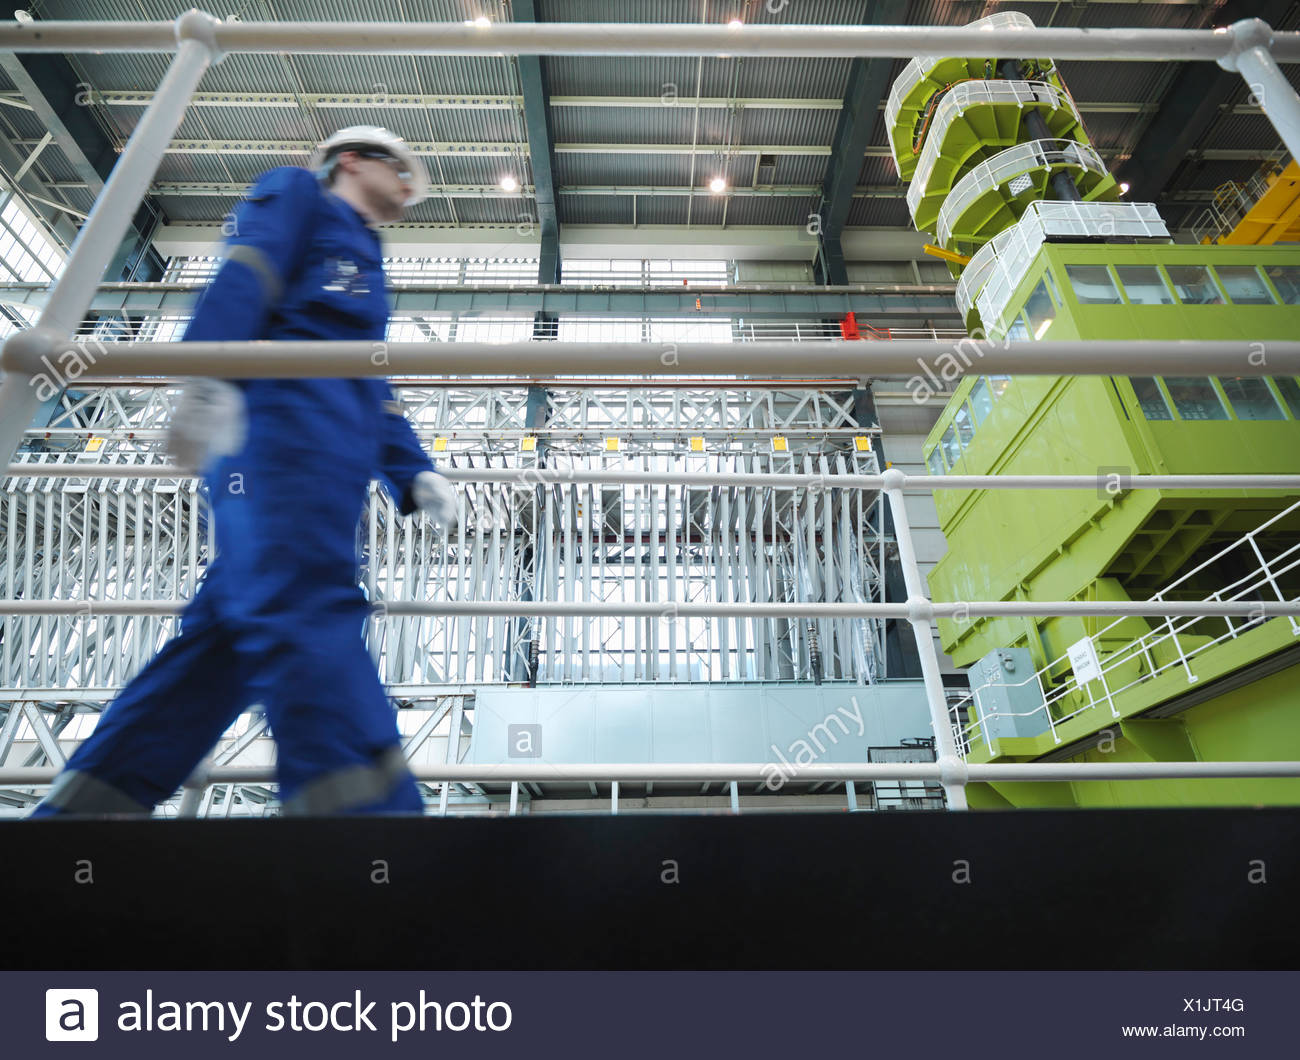 Engineer in Charging Hall - Stock Image